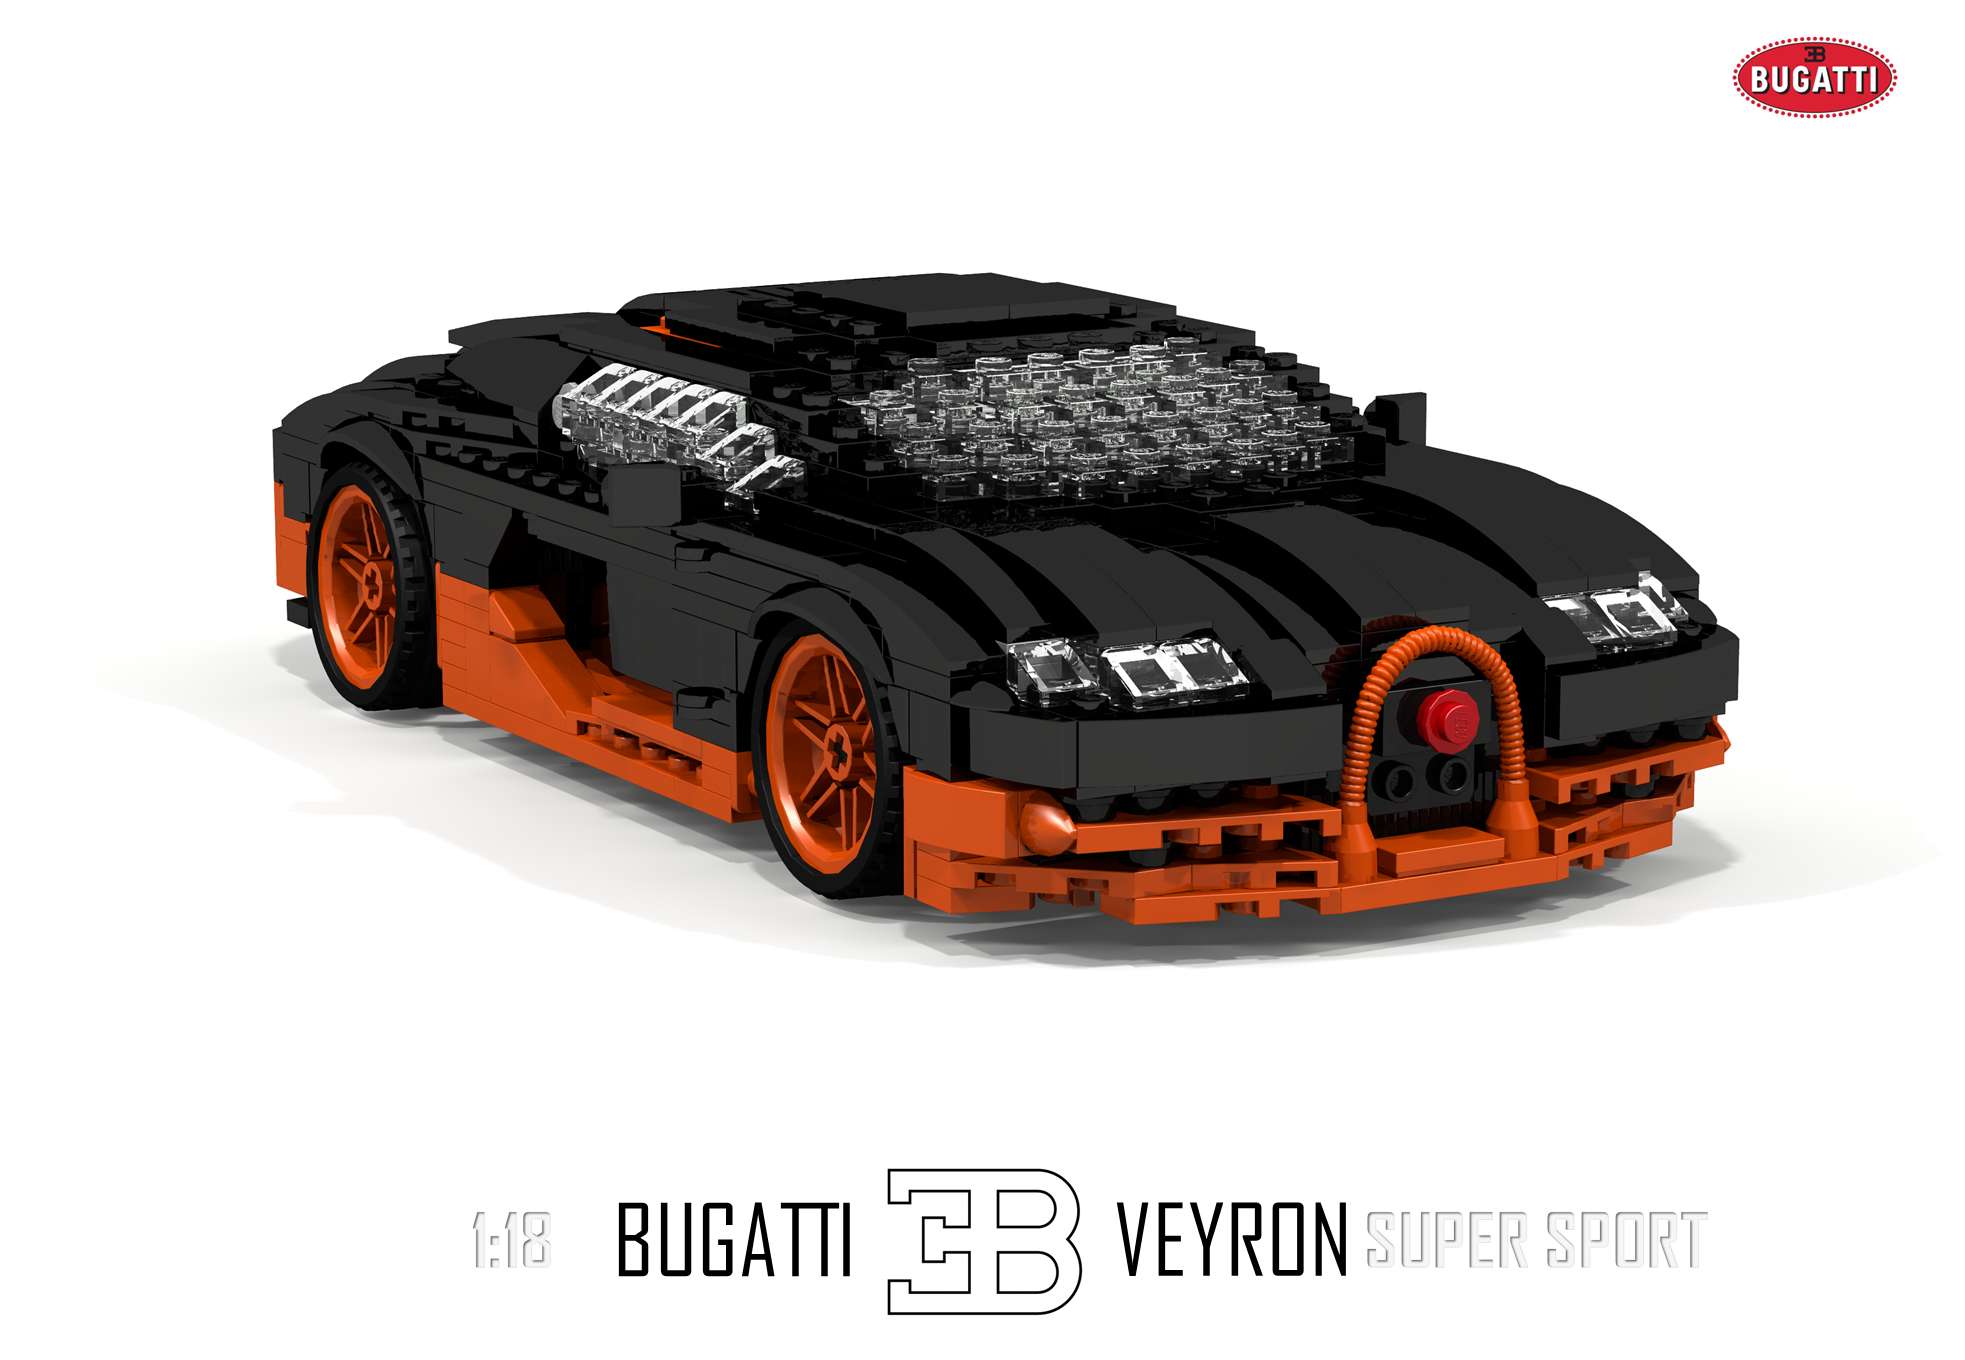 bugatti_veyron_super_sport_1to18_02.png